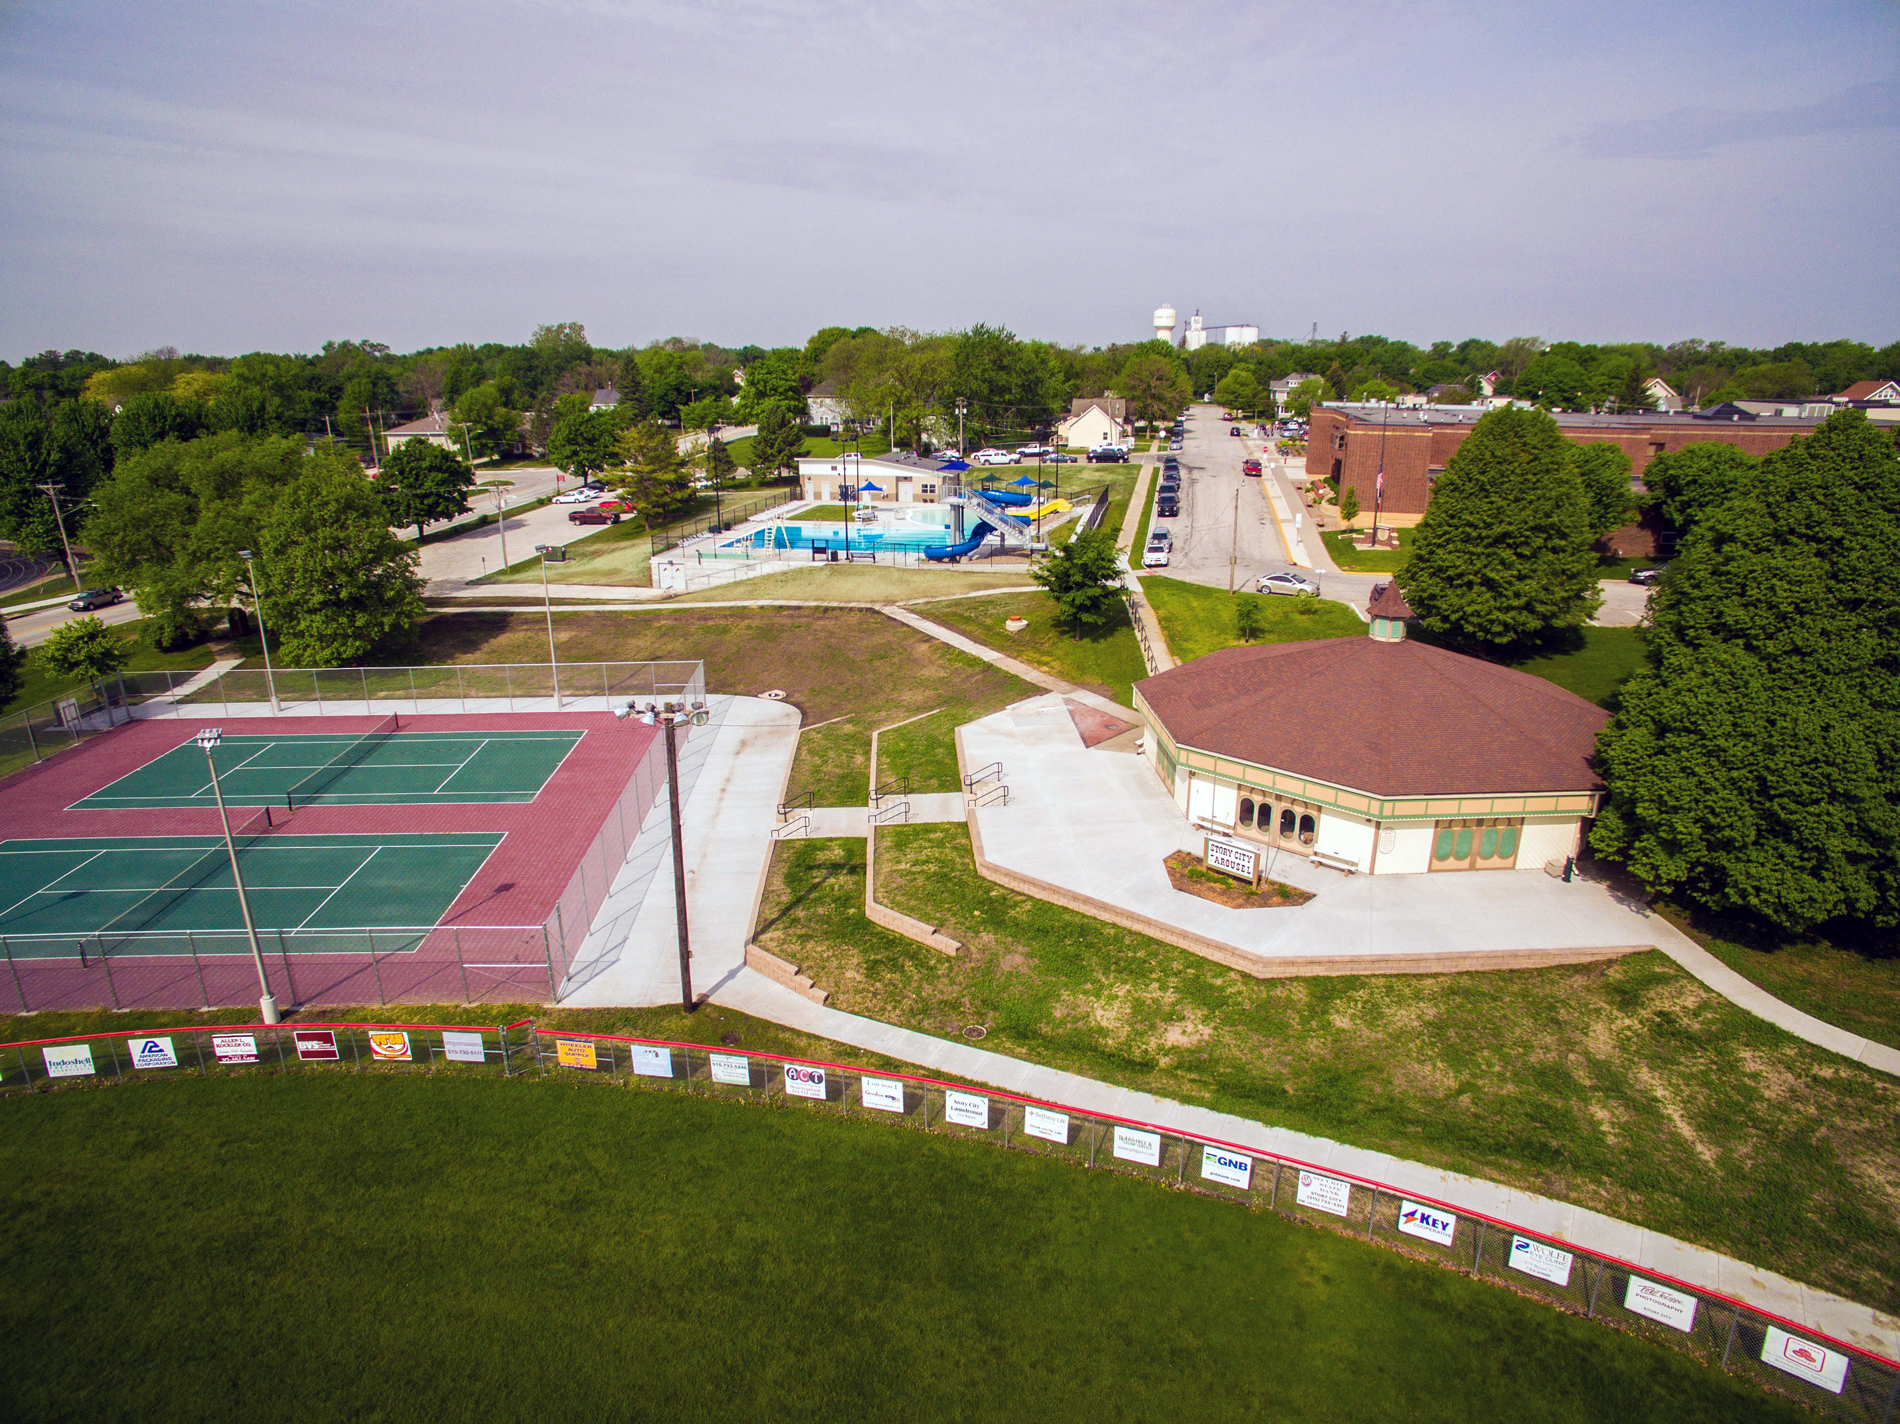 - City of Story City Pool, Carousel, Tennis Courts